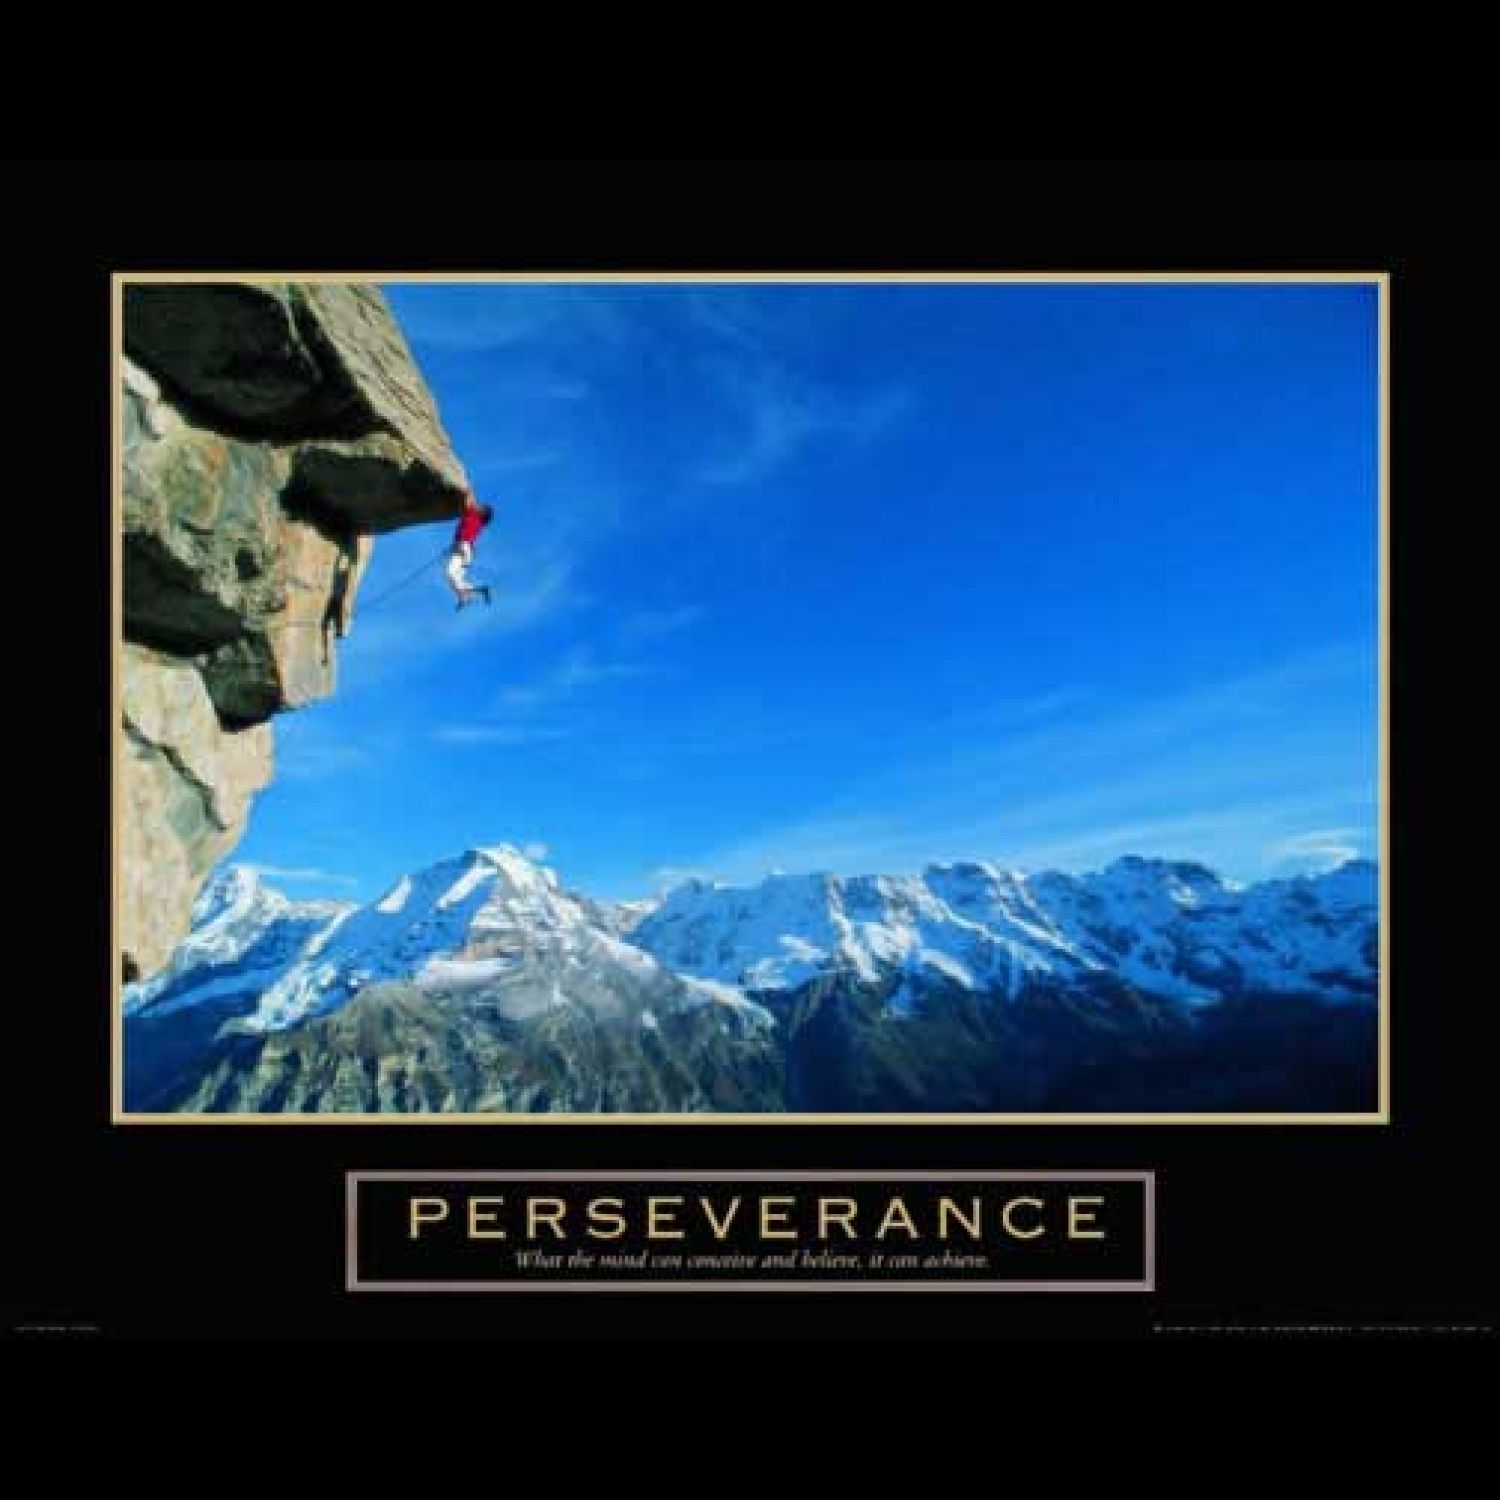 Persistence Motivational Quotes Teamwork: Perseverance Images